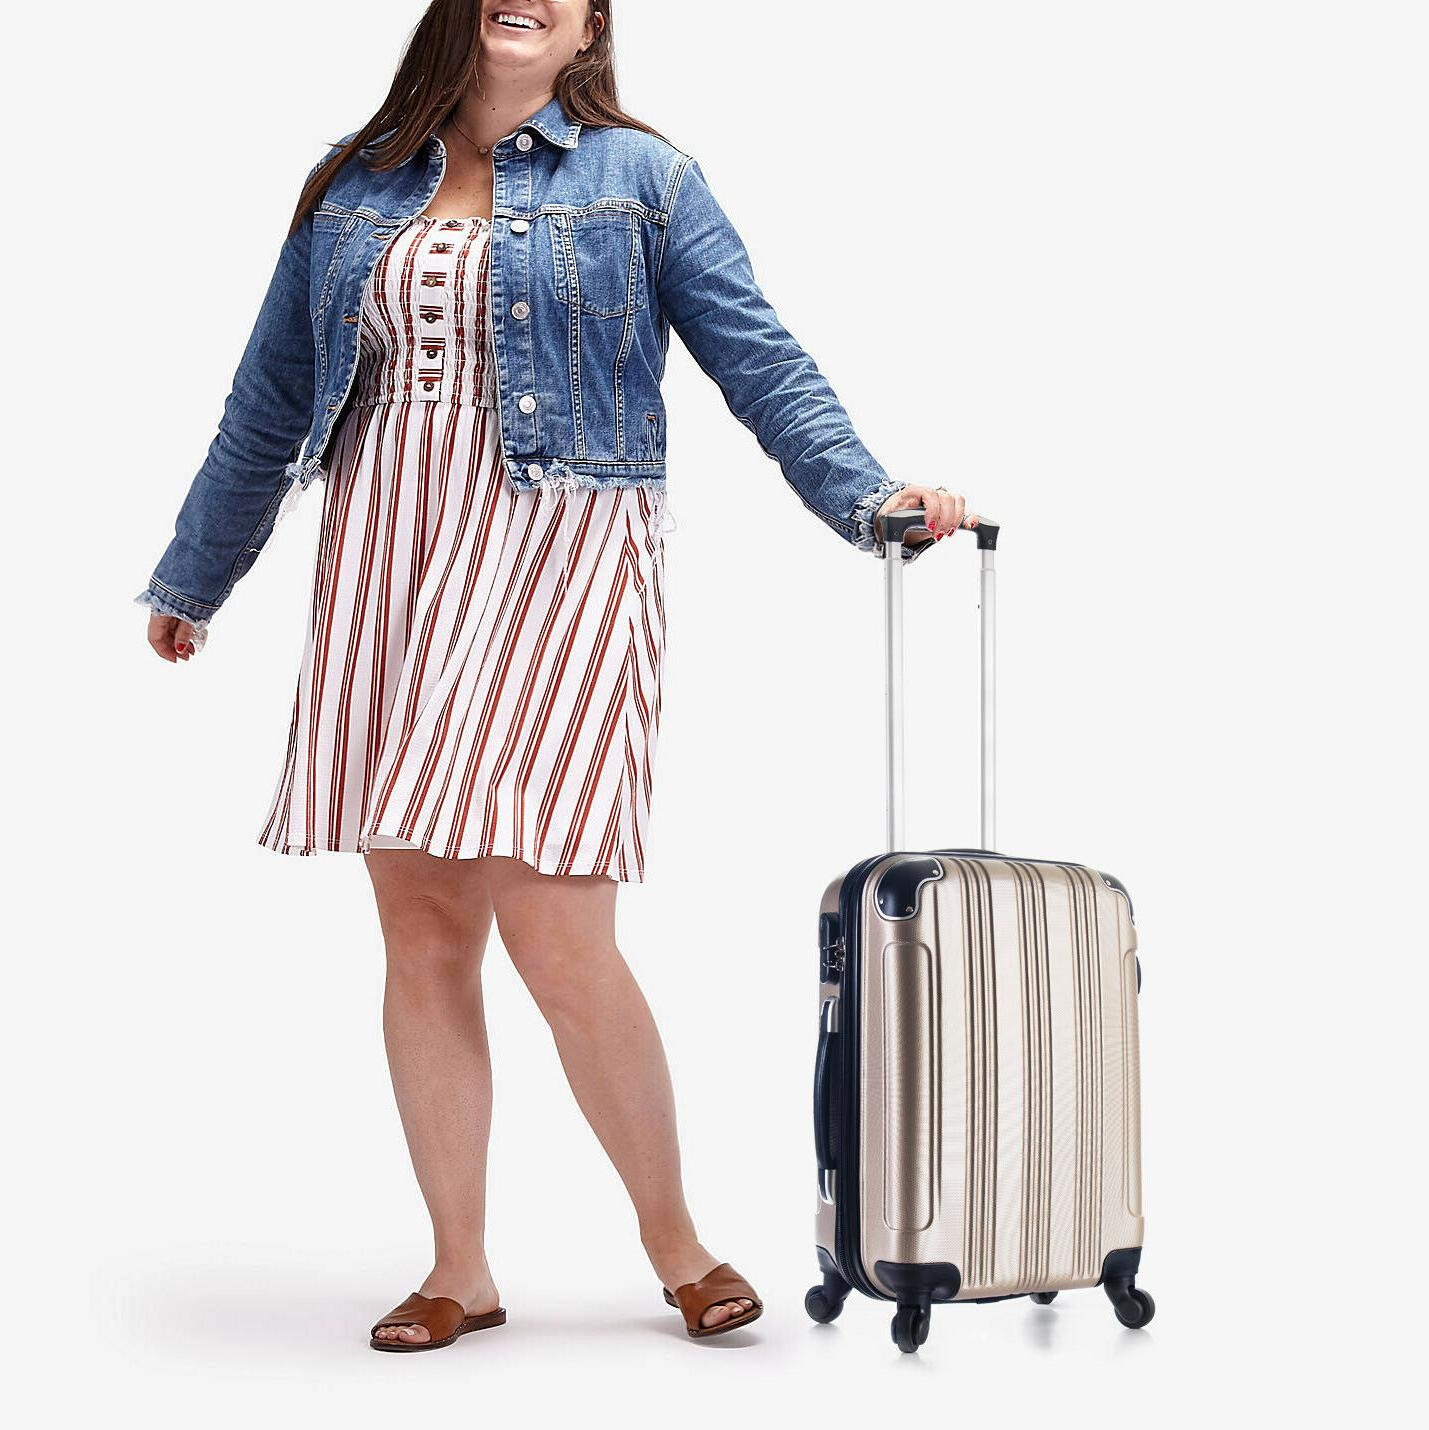 Carry on Travel Lightweight Rolling Hard